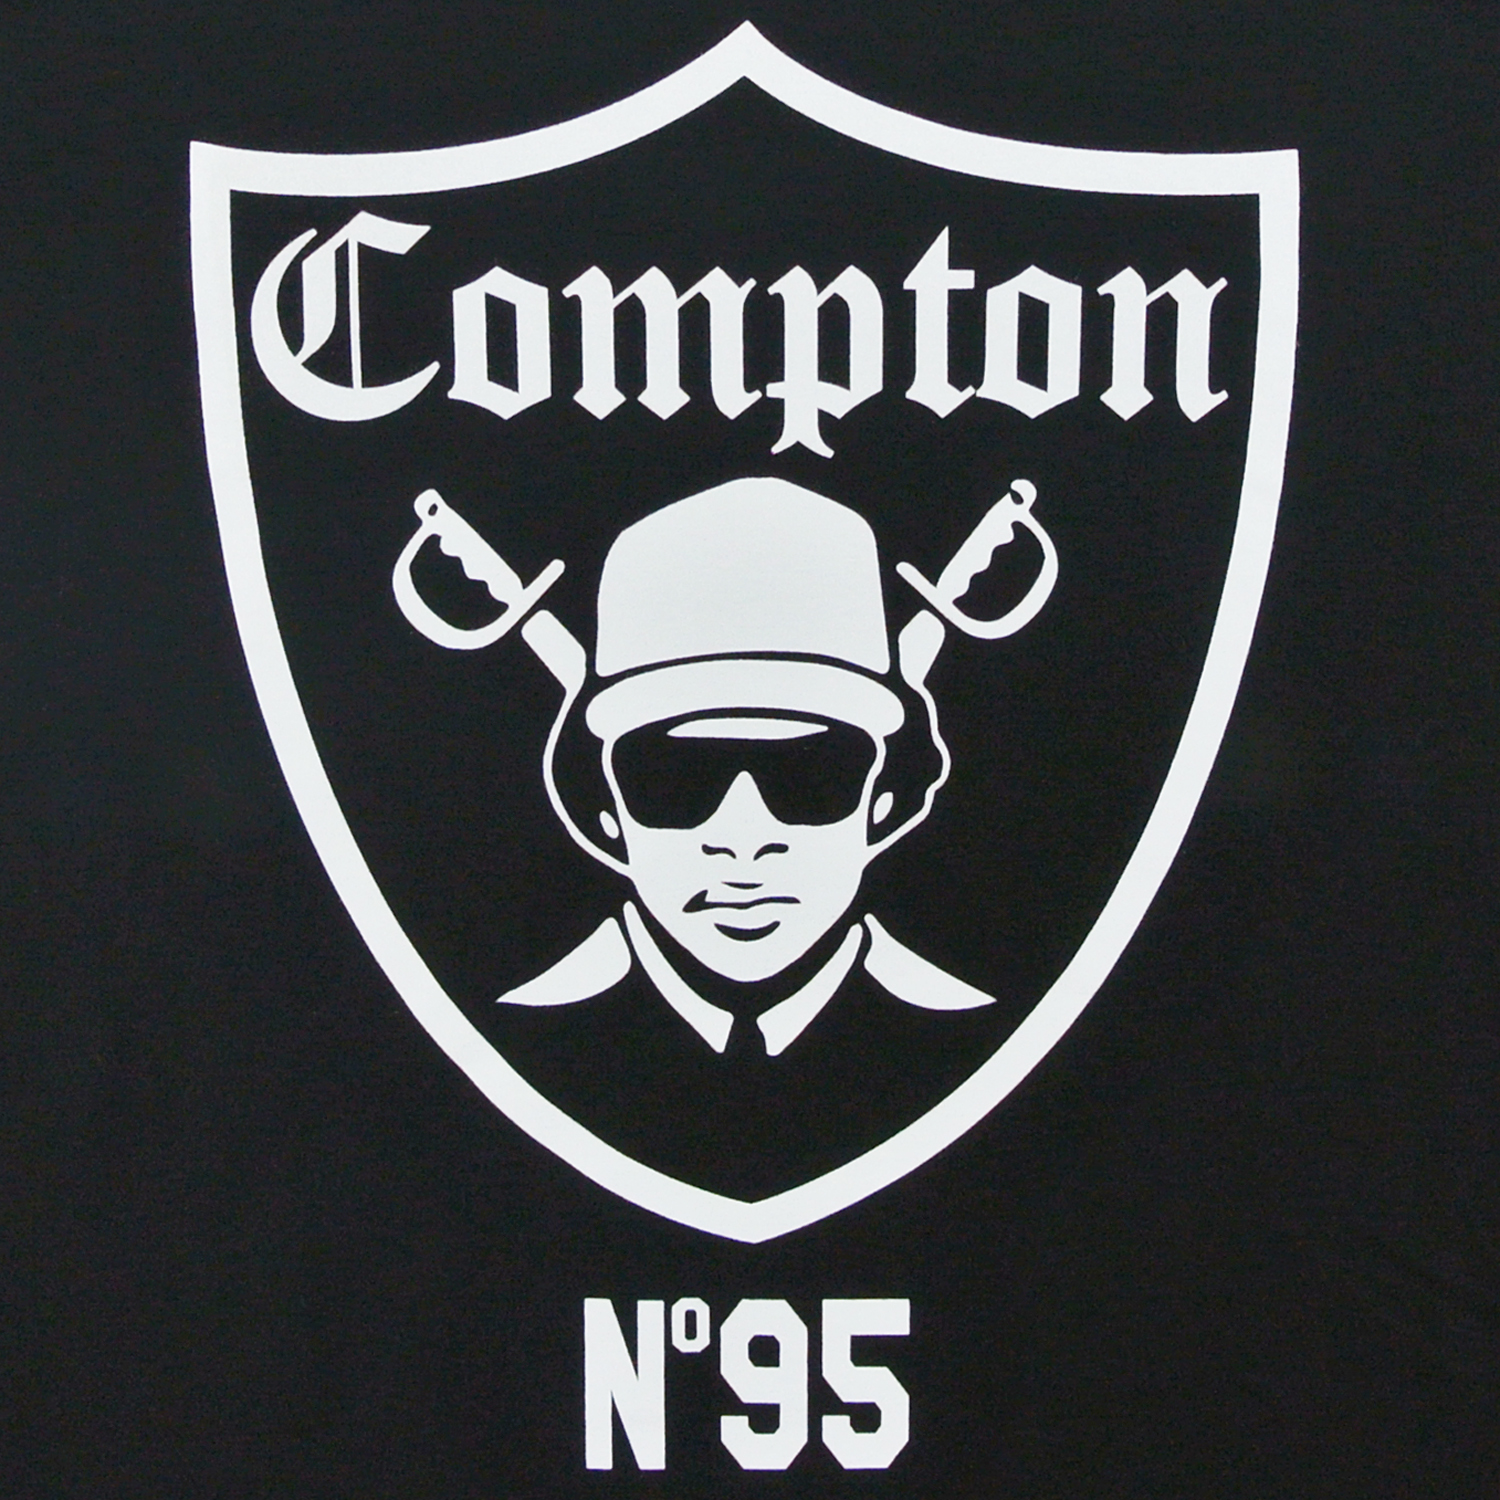 8 powerful must-see images City of compton pictures